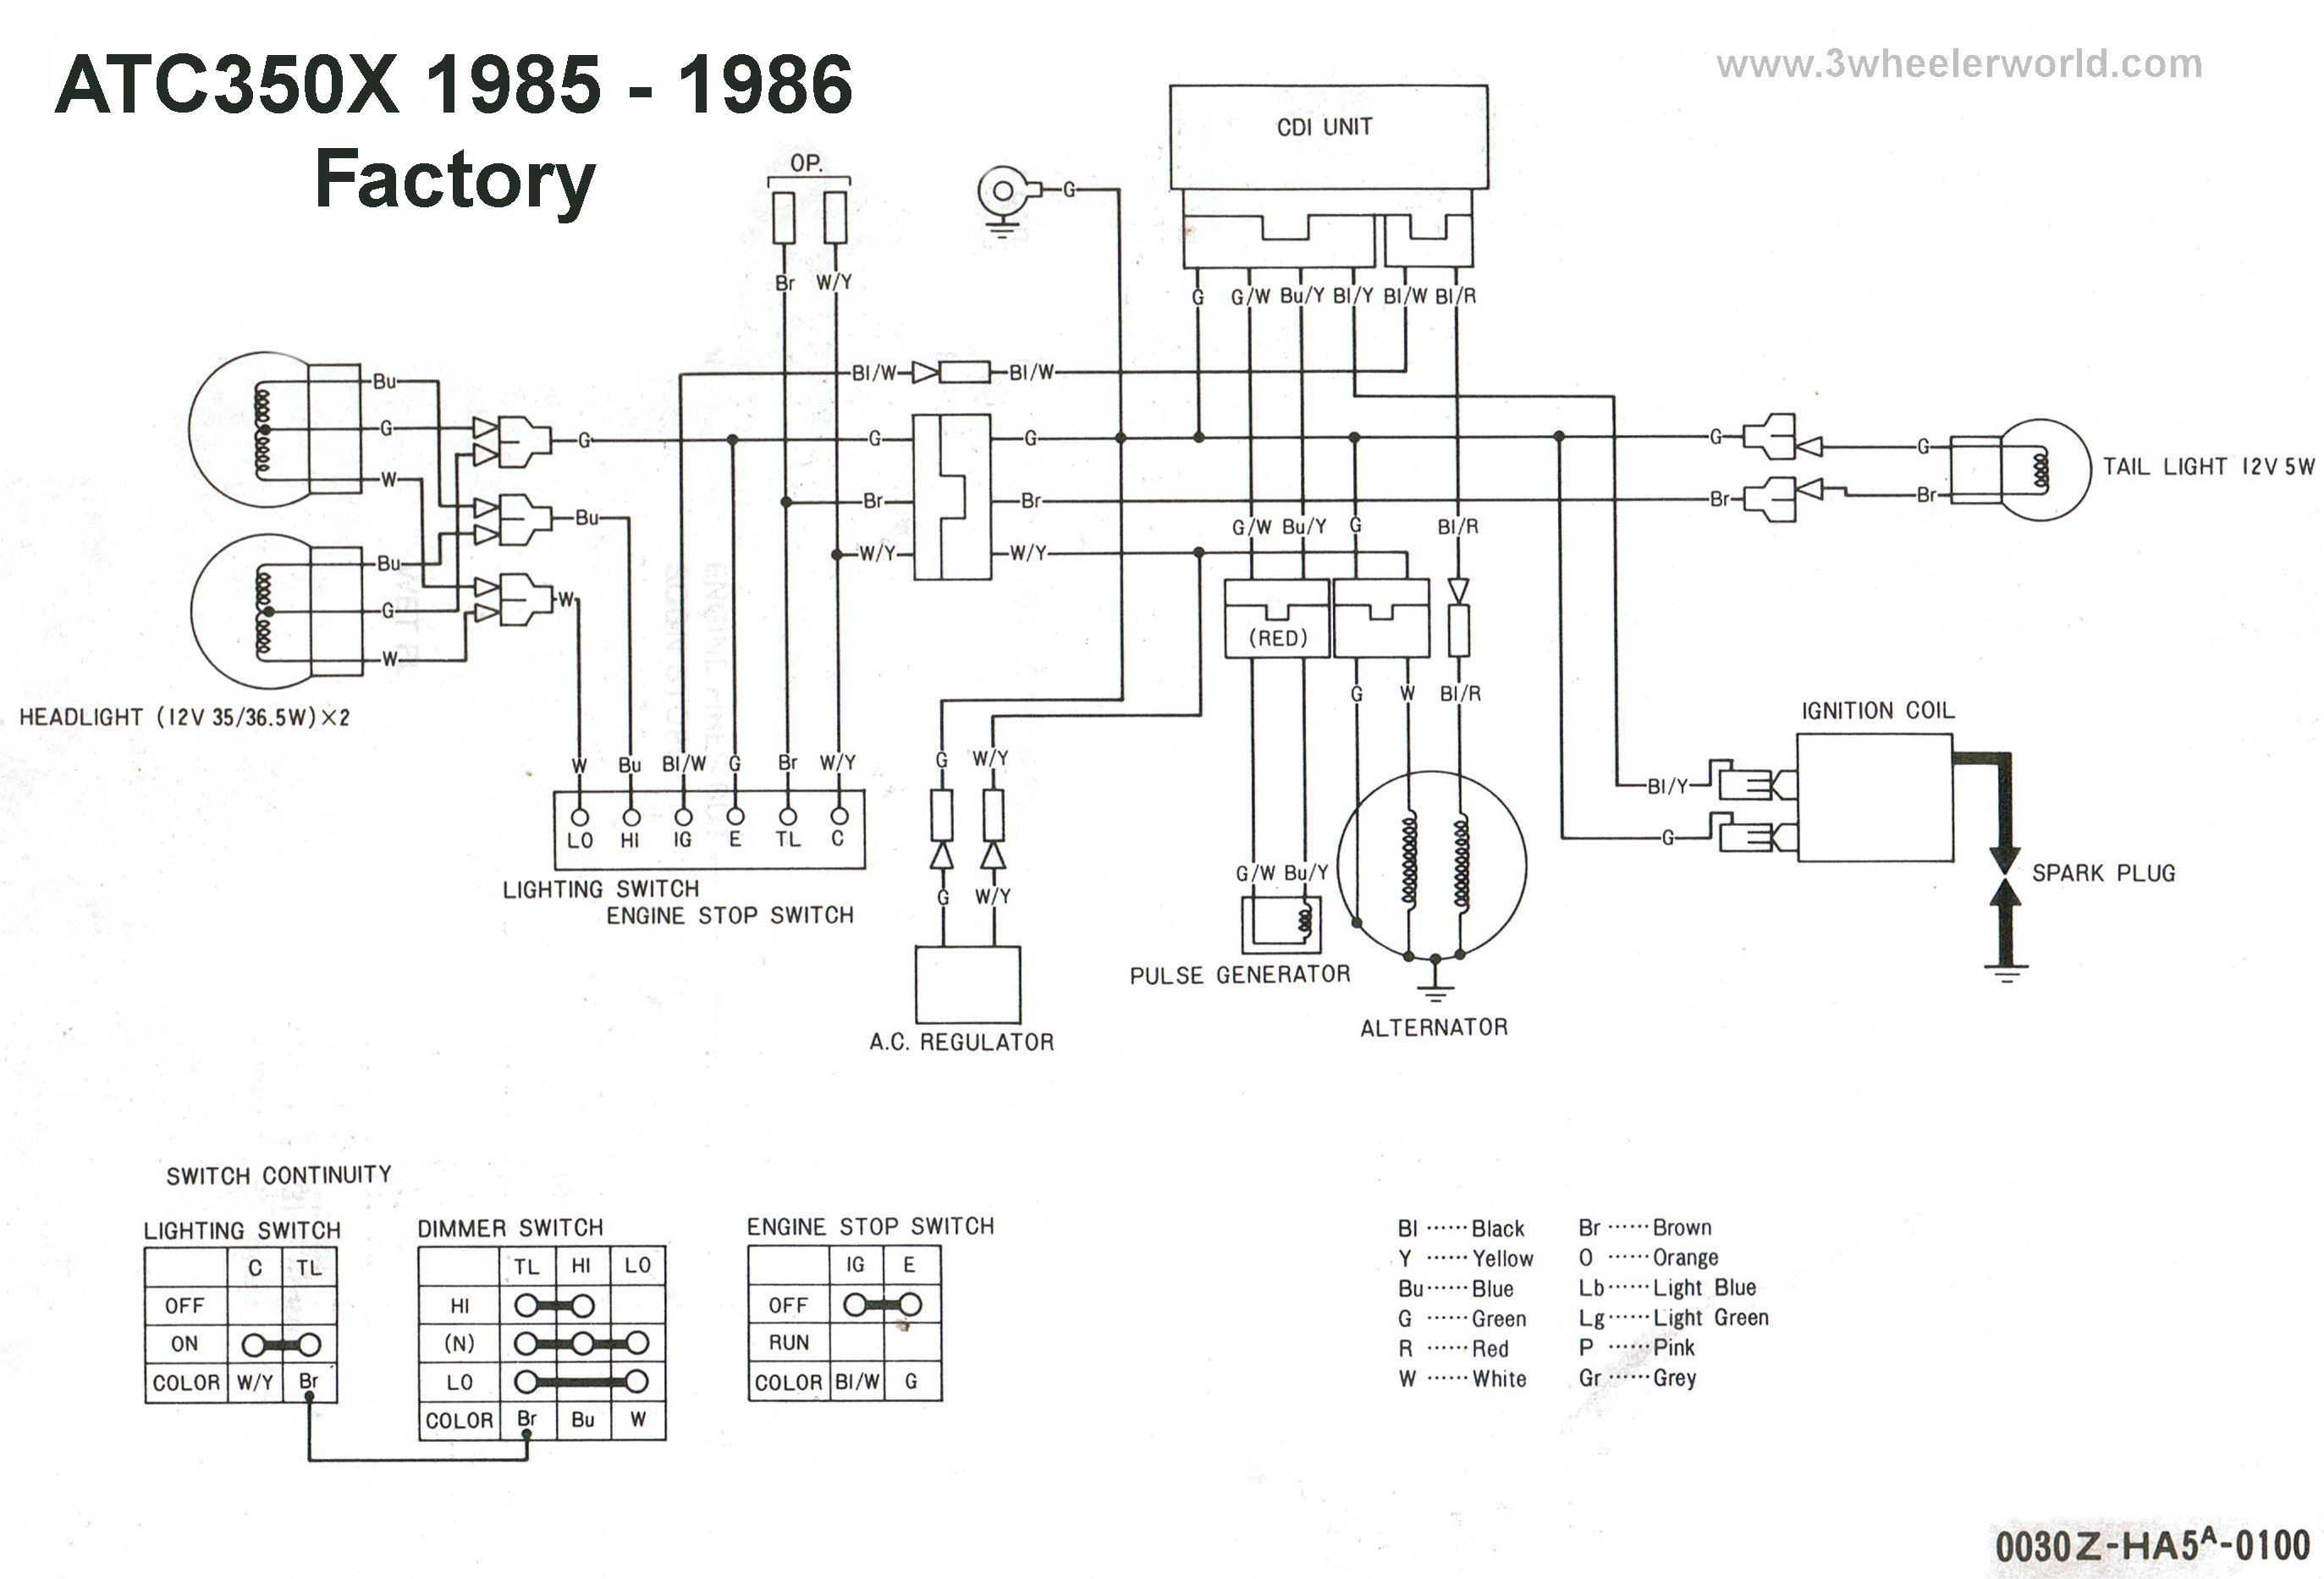 ATC350Xx85Thru86 honda 250x wiring diagram on honda download wirning diagrams 1993 honda fourtrax 300 wiring diagram at bayanpartner.co